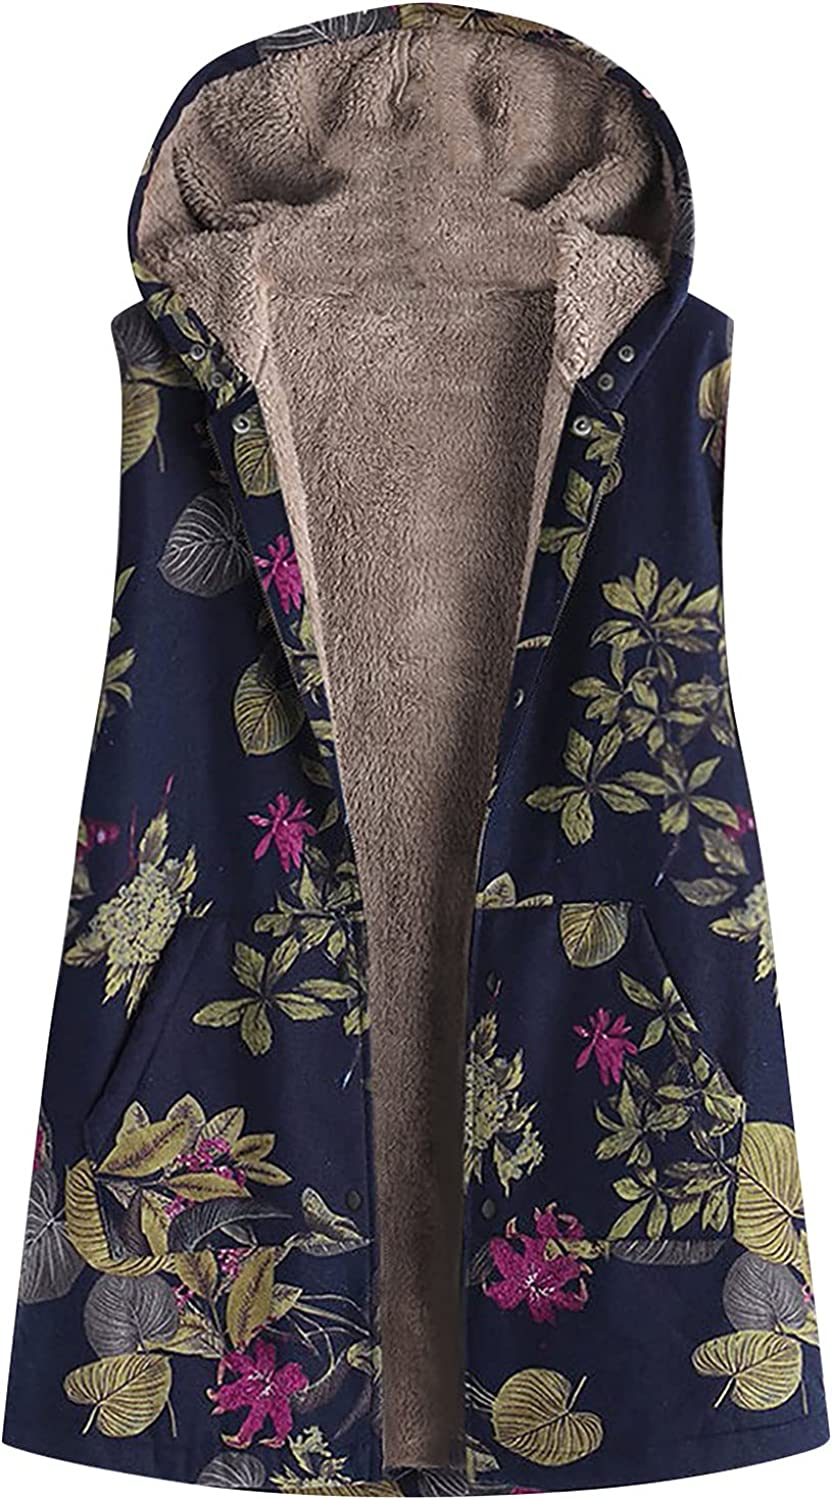 Women Outwear Vest Sleeveless Hoodie Floral Print Tops Fashion Winter Loose Blouse Pullover(XXL,Pink)